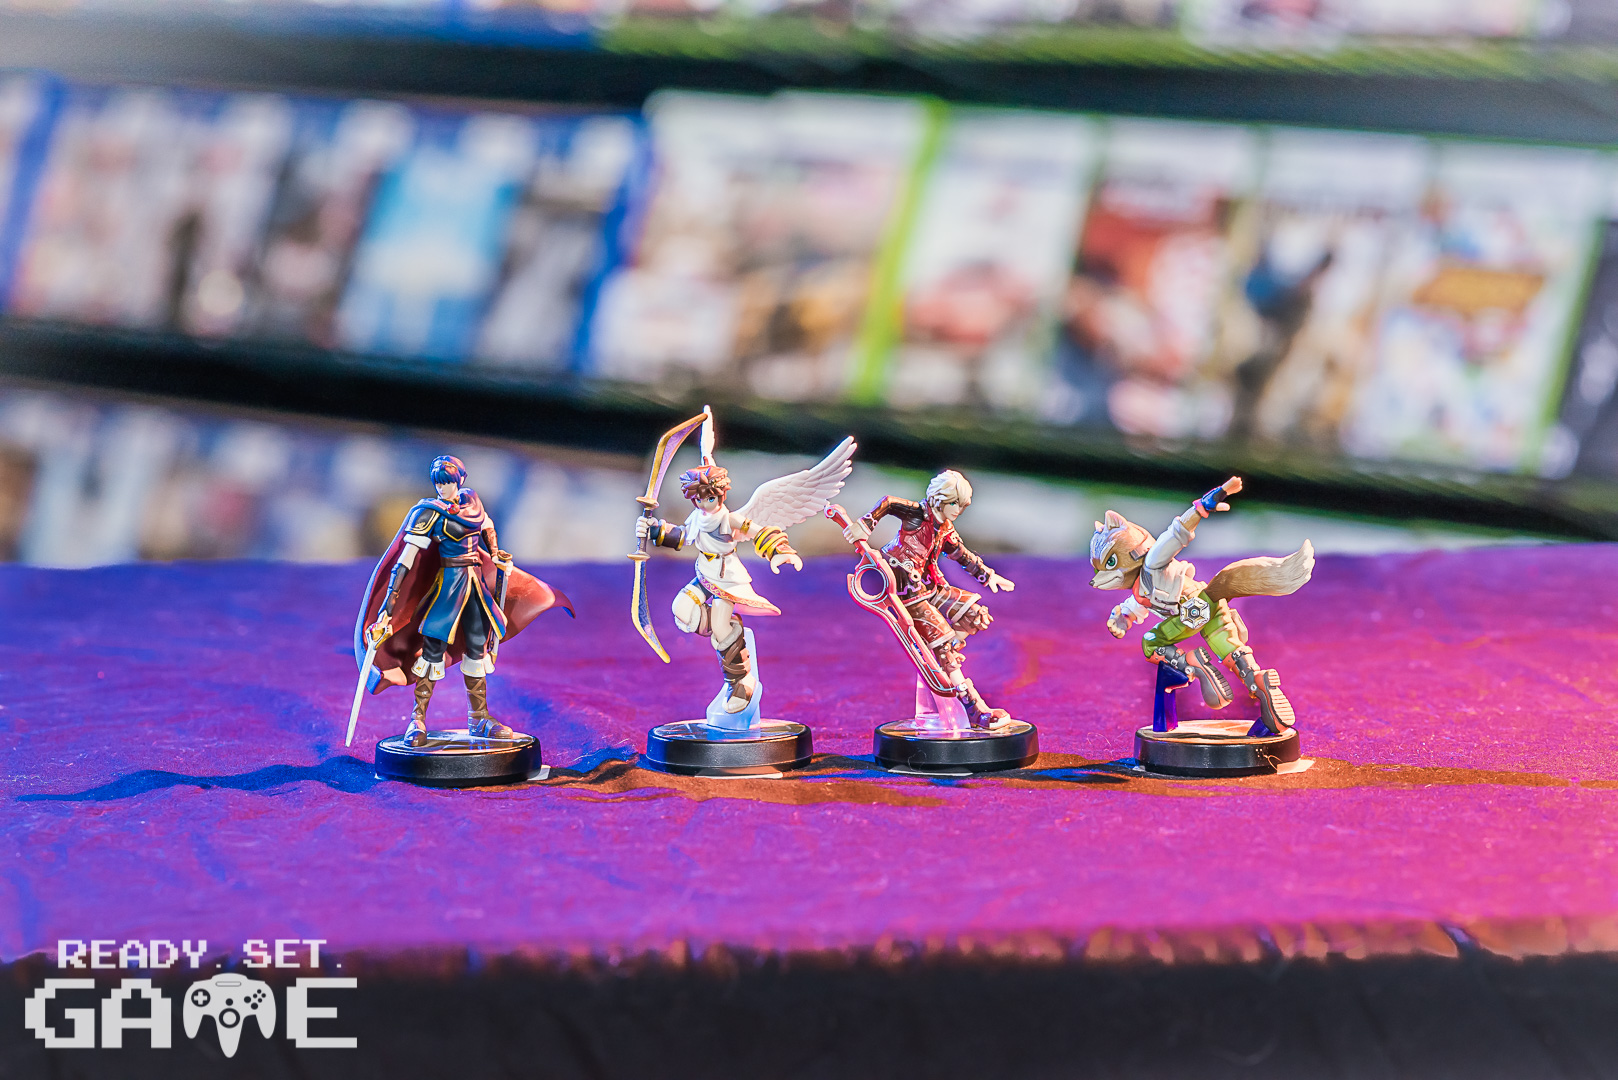 Ready set game toys and figurines.